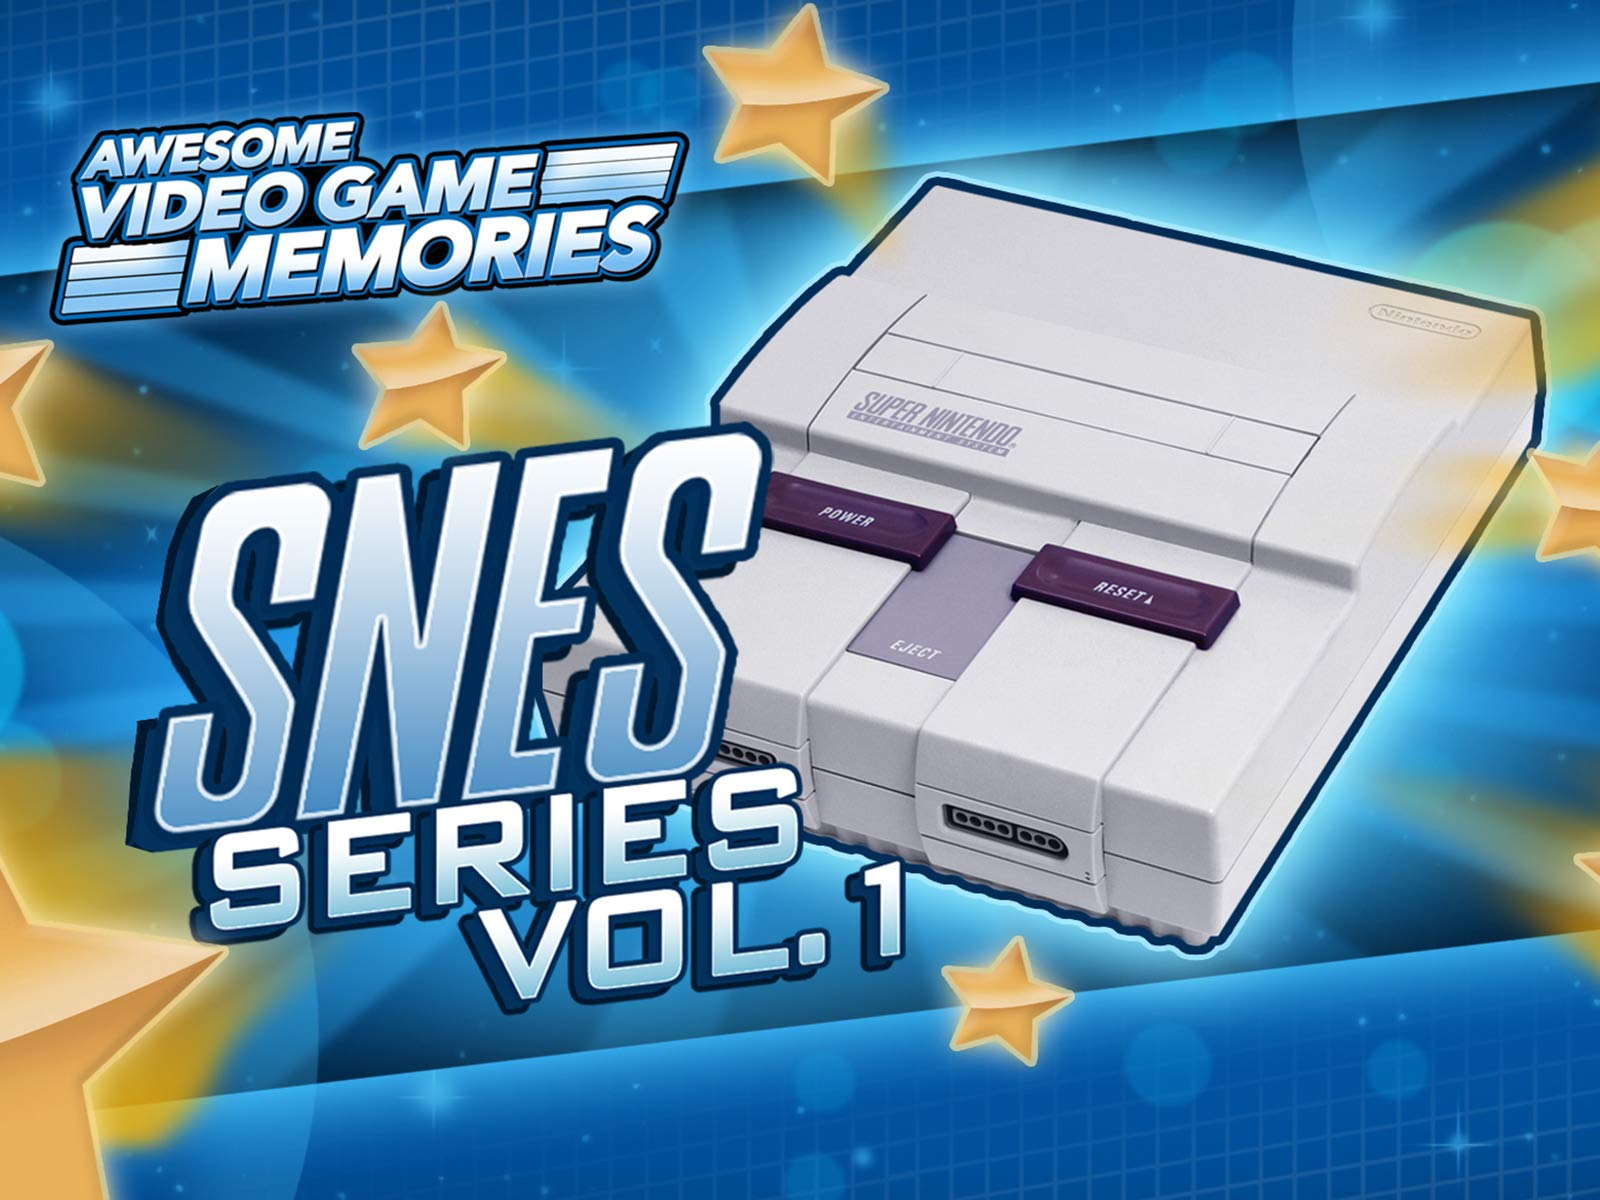 Amazon.com: Watch Awesome Video Game Memories   Prime Video